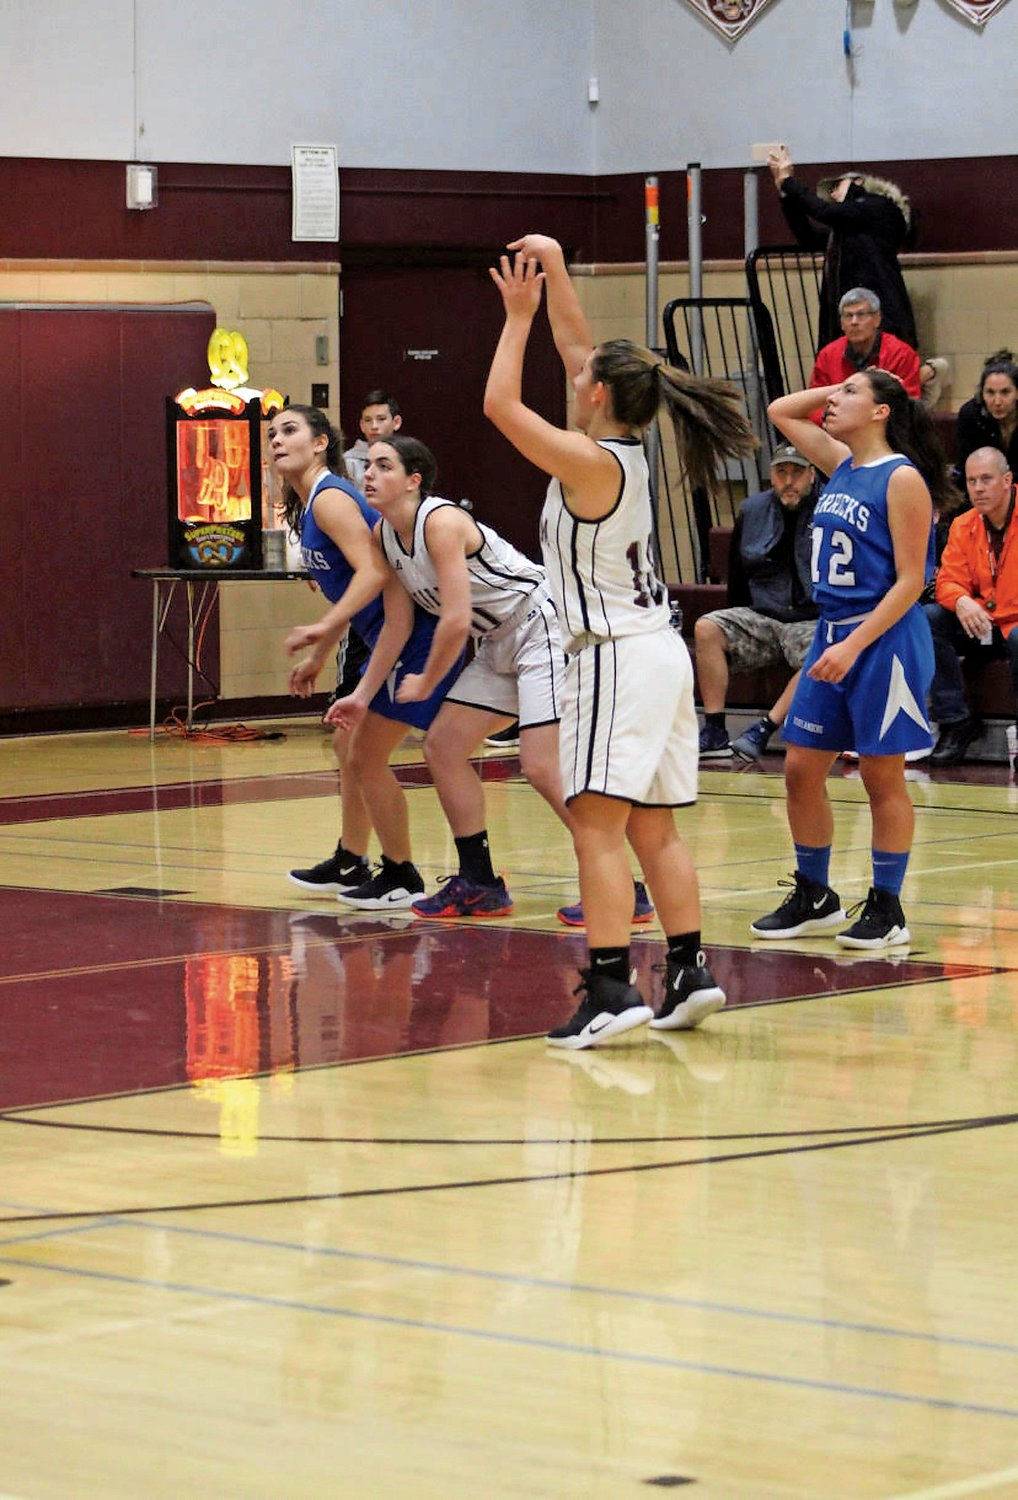 Mepham High School senior Lorrie Dellacroce shot a free throw during a conference game against Herricks this season on Dec. 20.